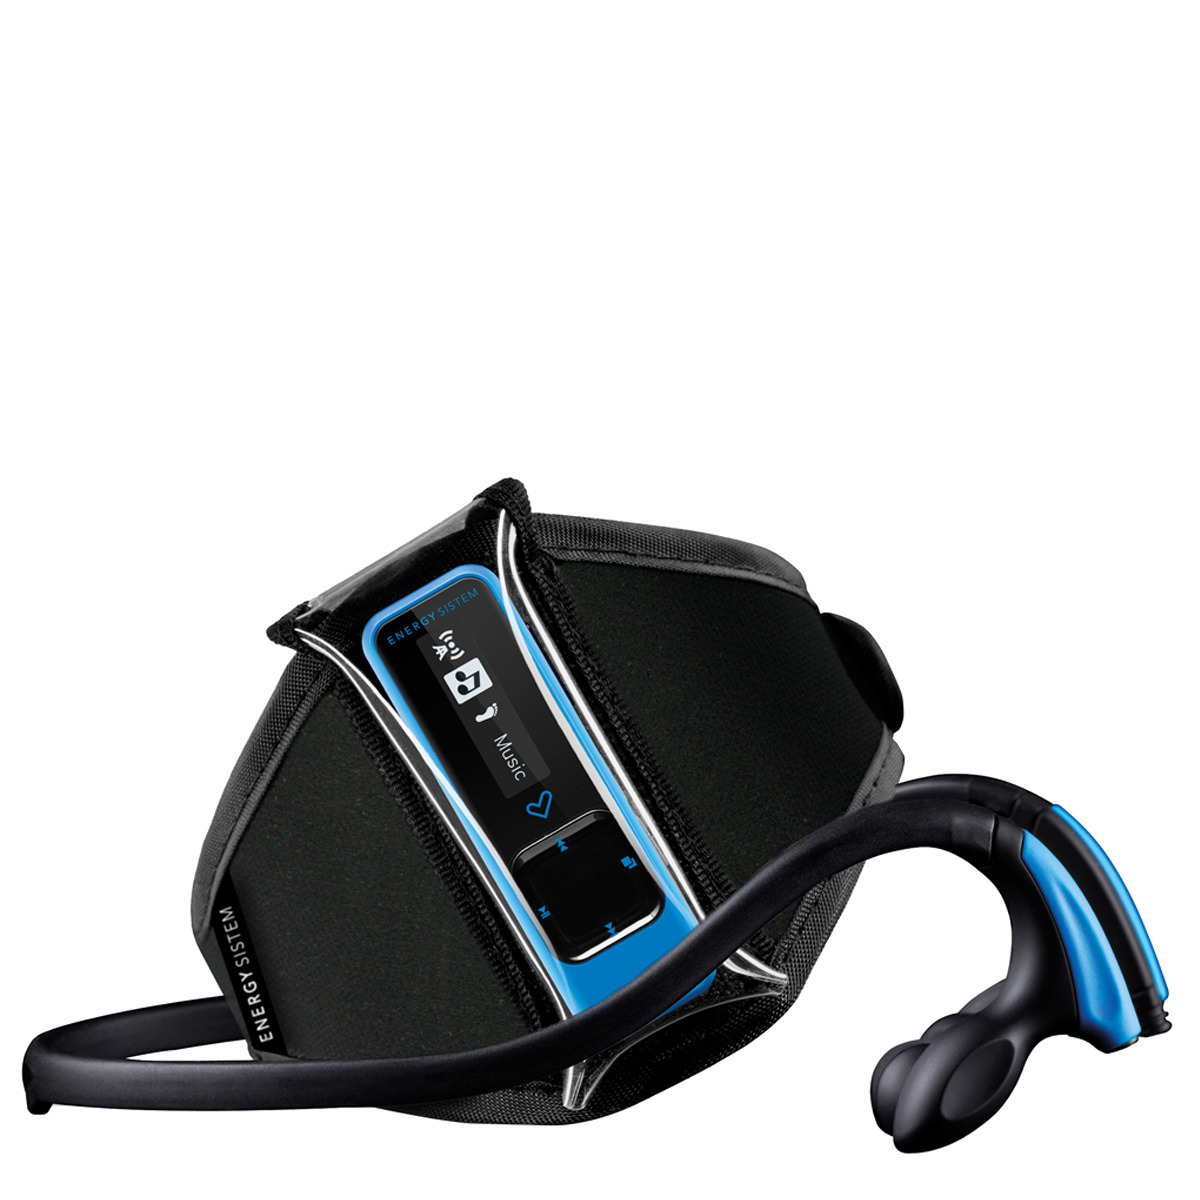 Reproductor MP3 Energy Sistem Running 3 Neon Blue de 8 GB con podómetro y Radio FM